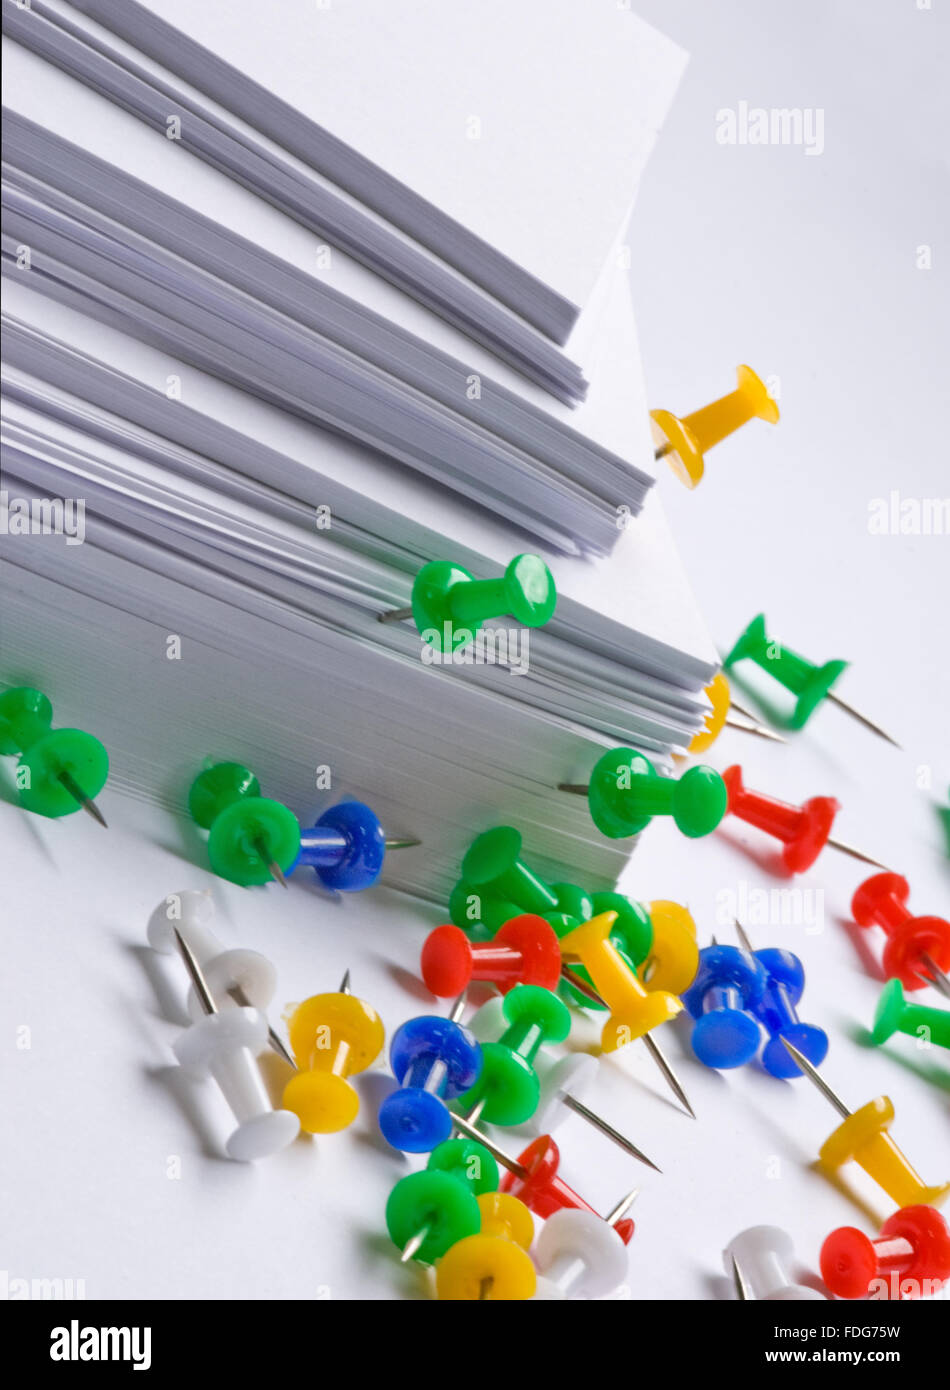 Office stationary with Colorful push pins and white note paper  sheets. - Stock Image